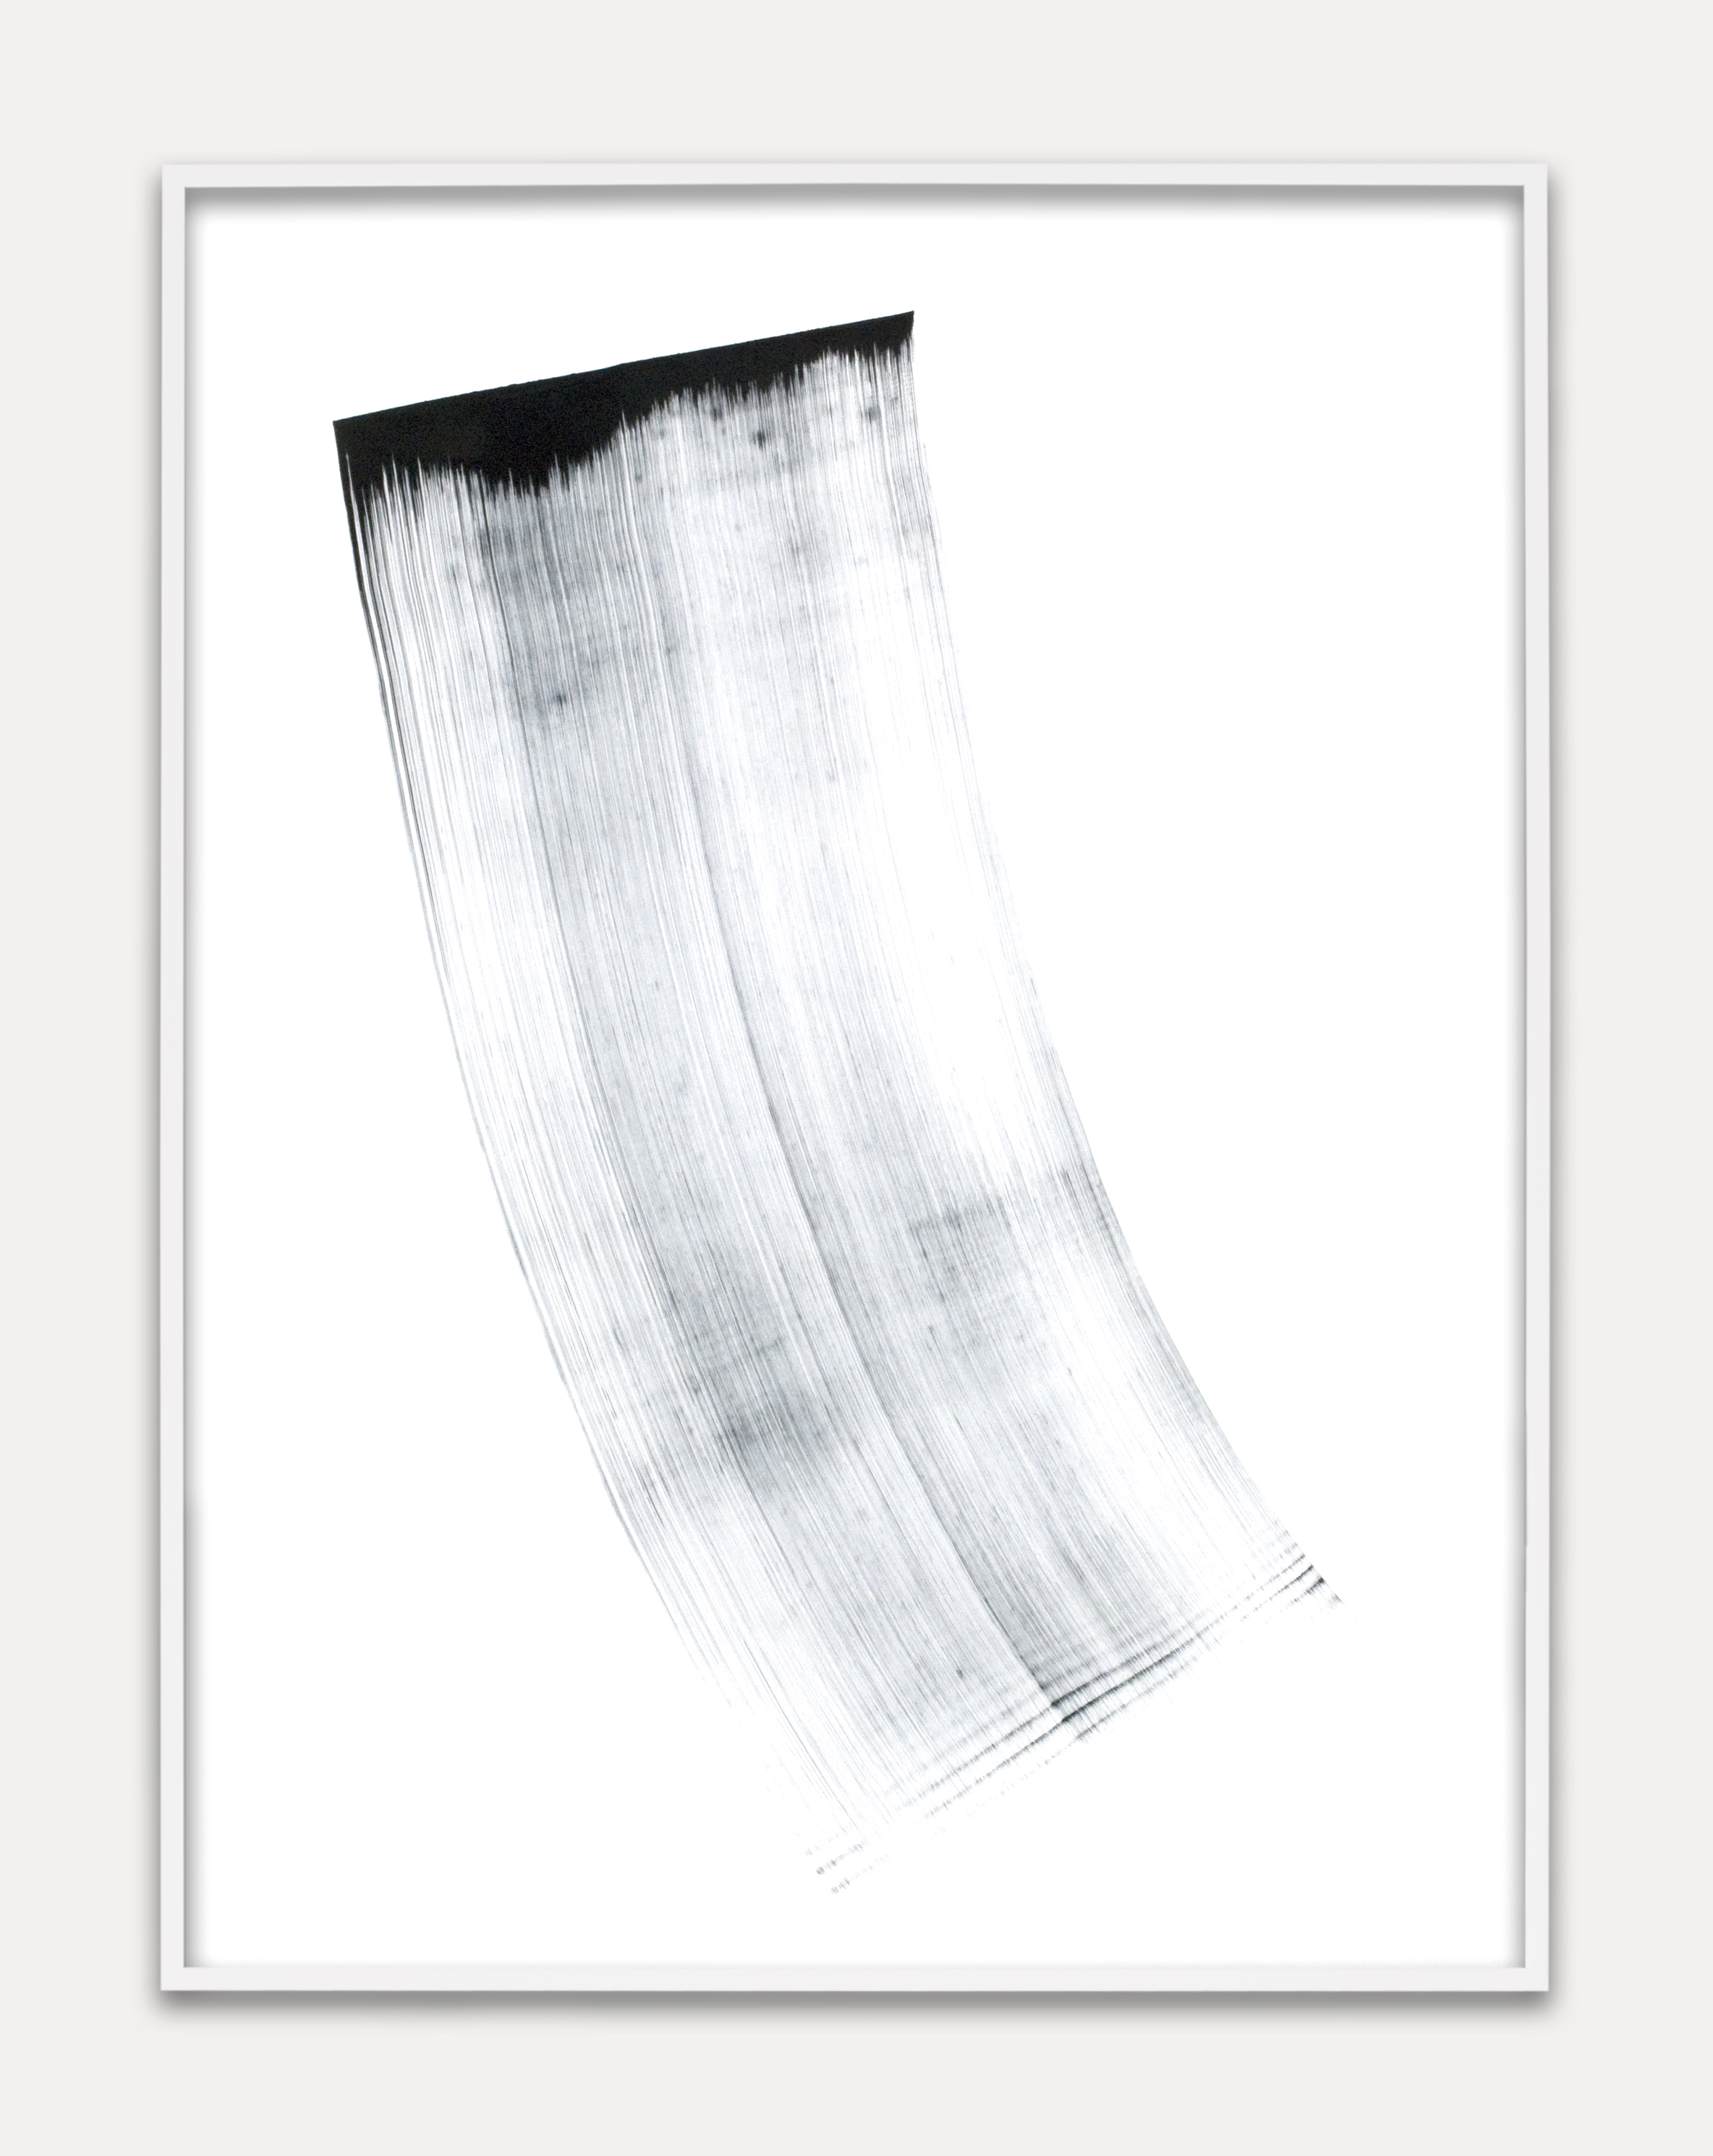 Replacement Ink for Epson Printers (Black 446007) on Epson Premium Glossy Paper, 2014 unique archival pigment print 153,5 x 113,5 cm - 60 3/8 x 44 5/8 inches (framed)